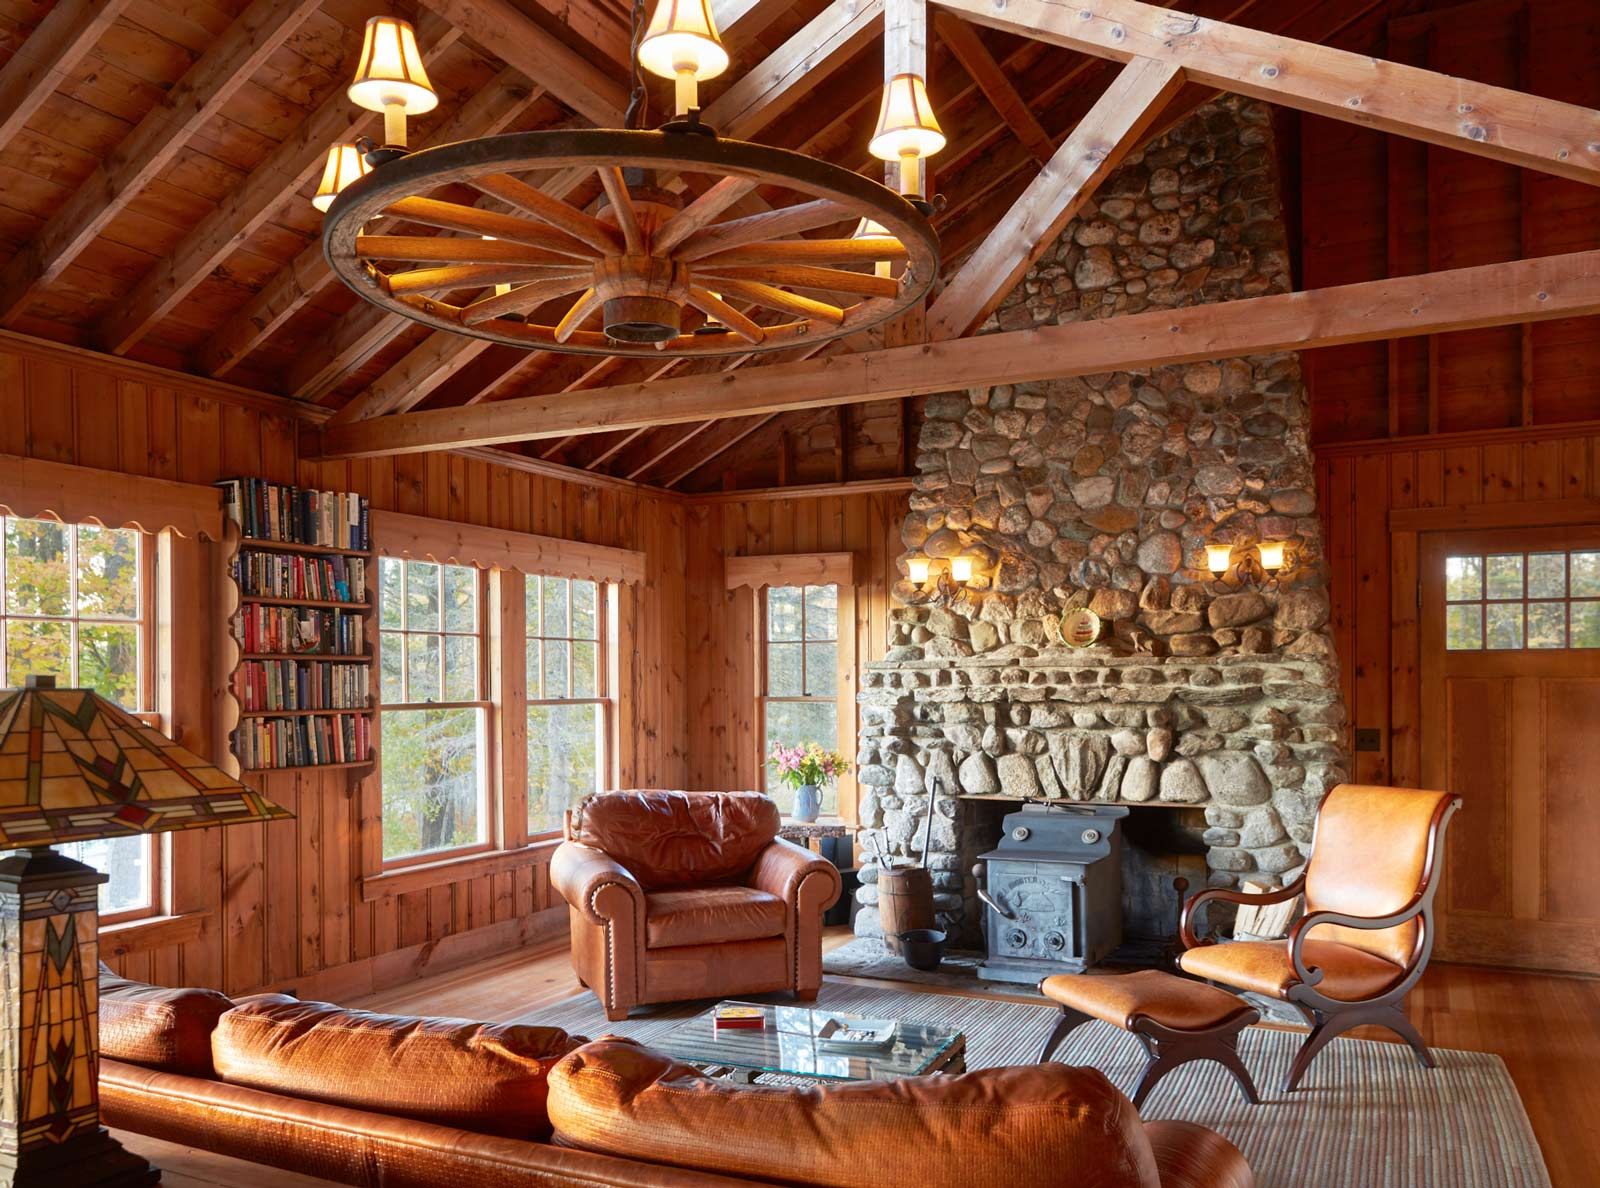 """A picture of the original lake house provides a glimpse of the unique """"friendship fireplace"""" built with stones from all over the world. In the new lake house, Kaufman wanted to reproduce as many beloved details as possible, allowing for stylistic updates to keep things familiar but fresh."""